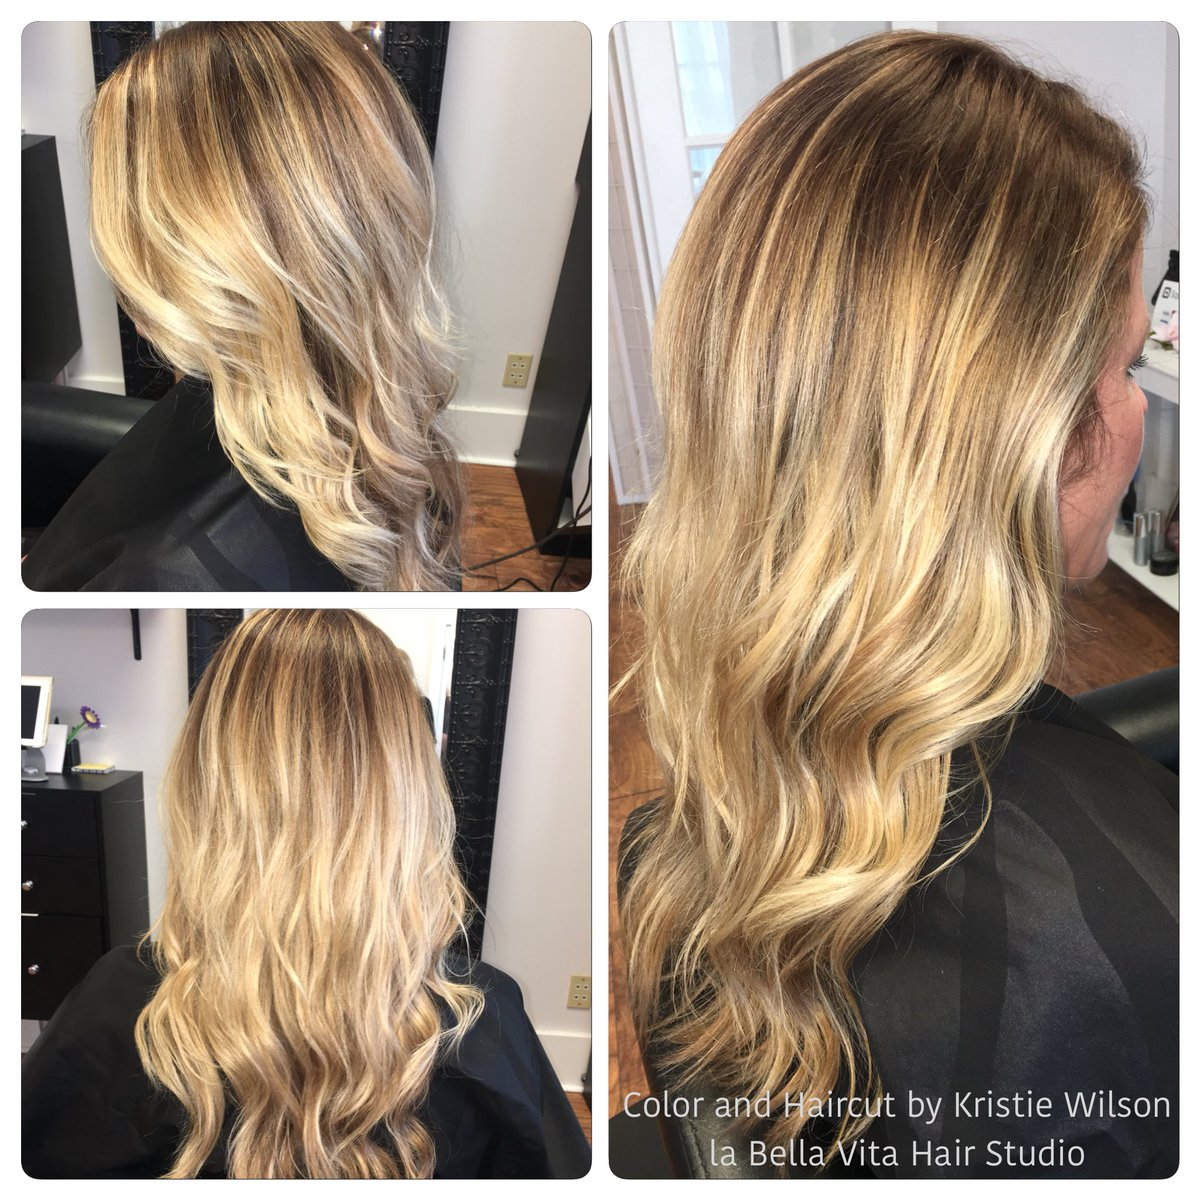 Kristie Wilson On Twitter Summer Balayage Call Or Text 785 727